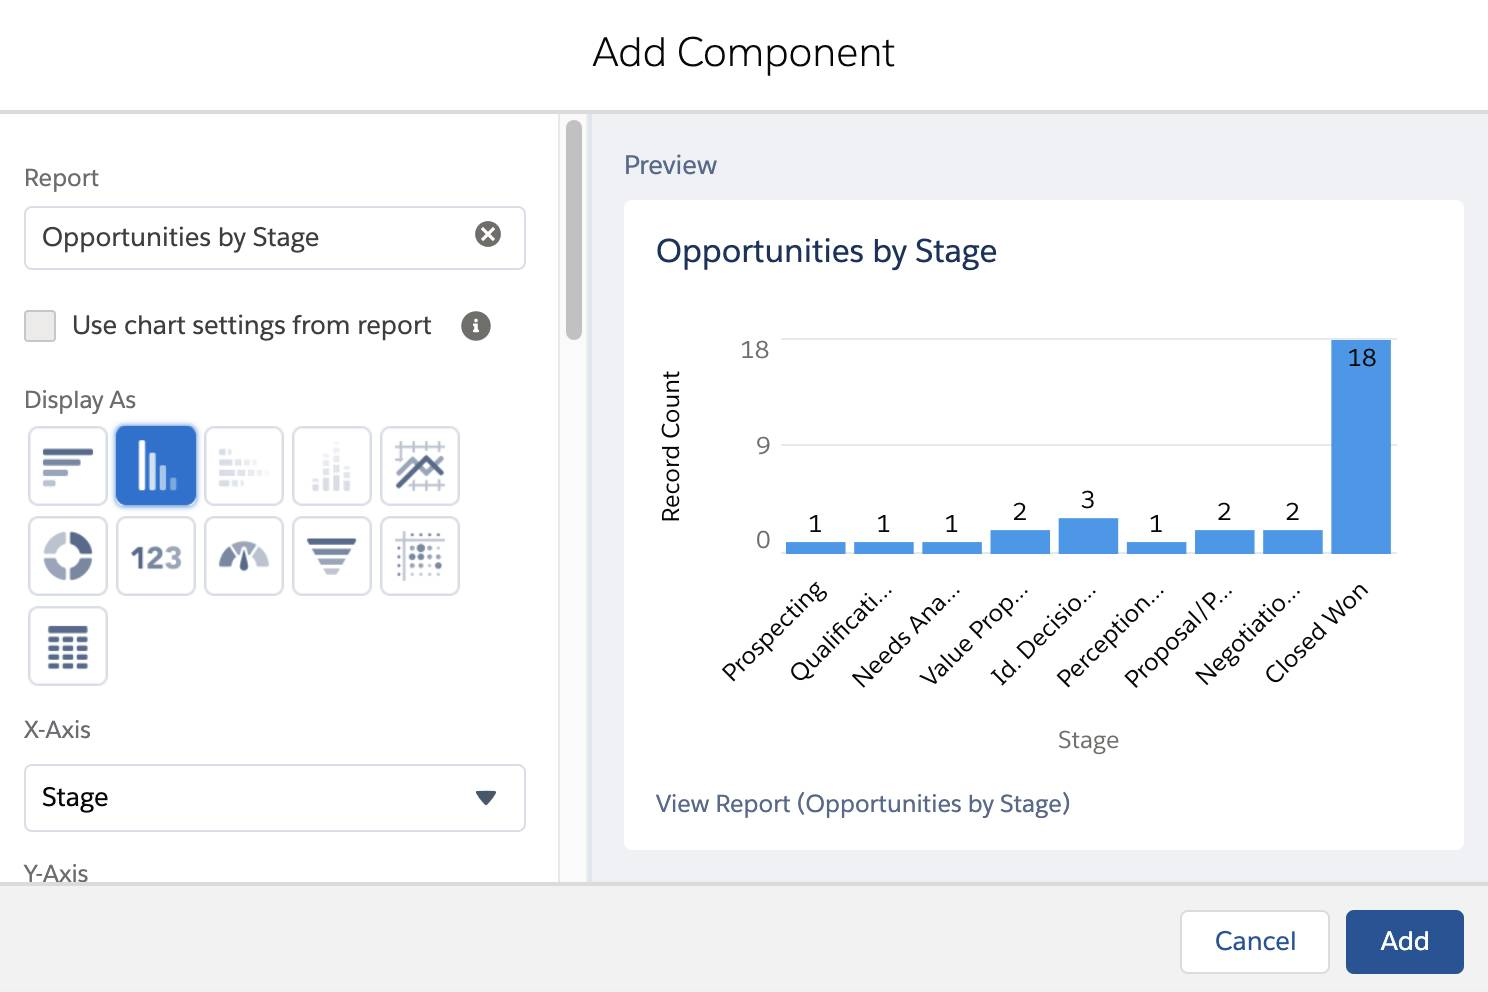 The dashboard editor contains component types under the Display As section. For this project choose the vertical bar chart component. The report field should contain the report you created in this project, titled Opportunities by Stage. Click the Add button to add the component.